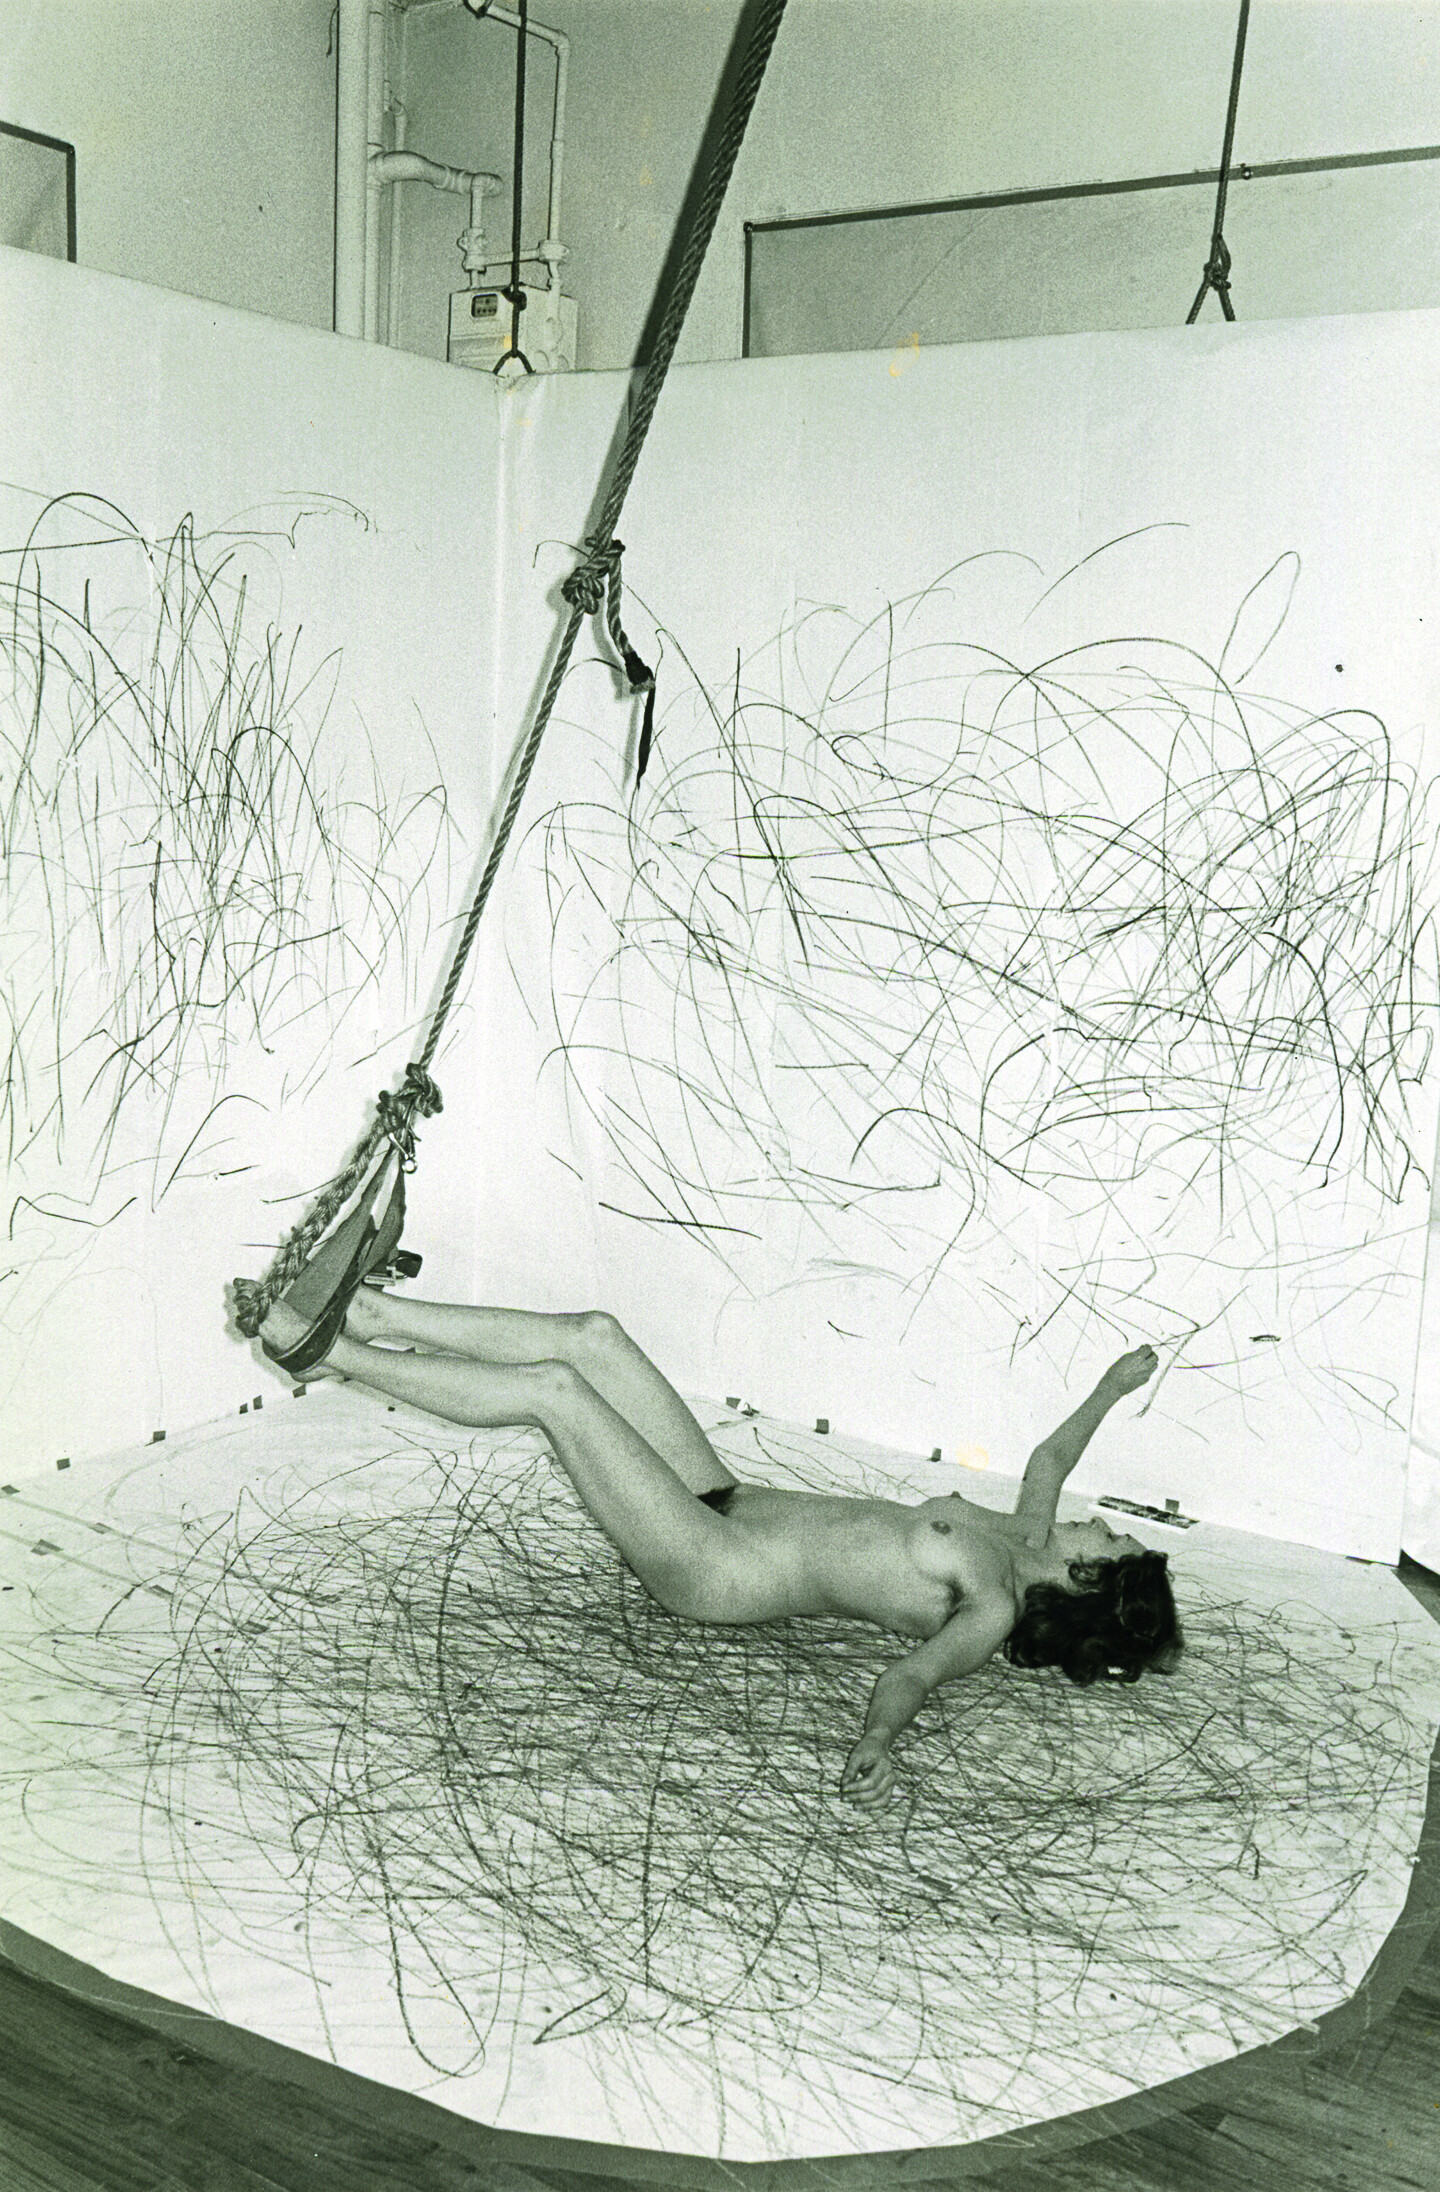 Carolee Schneemann, Up to and Including Her Limits, 1973-1977. Courtesy  Carolee Schneemann, VG Bild-Kunst, Bonn 2017.